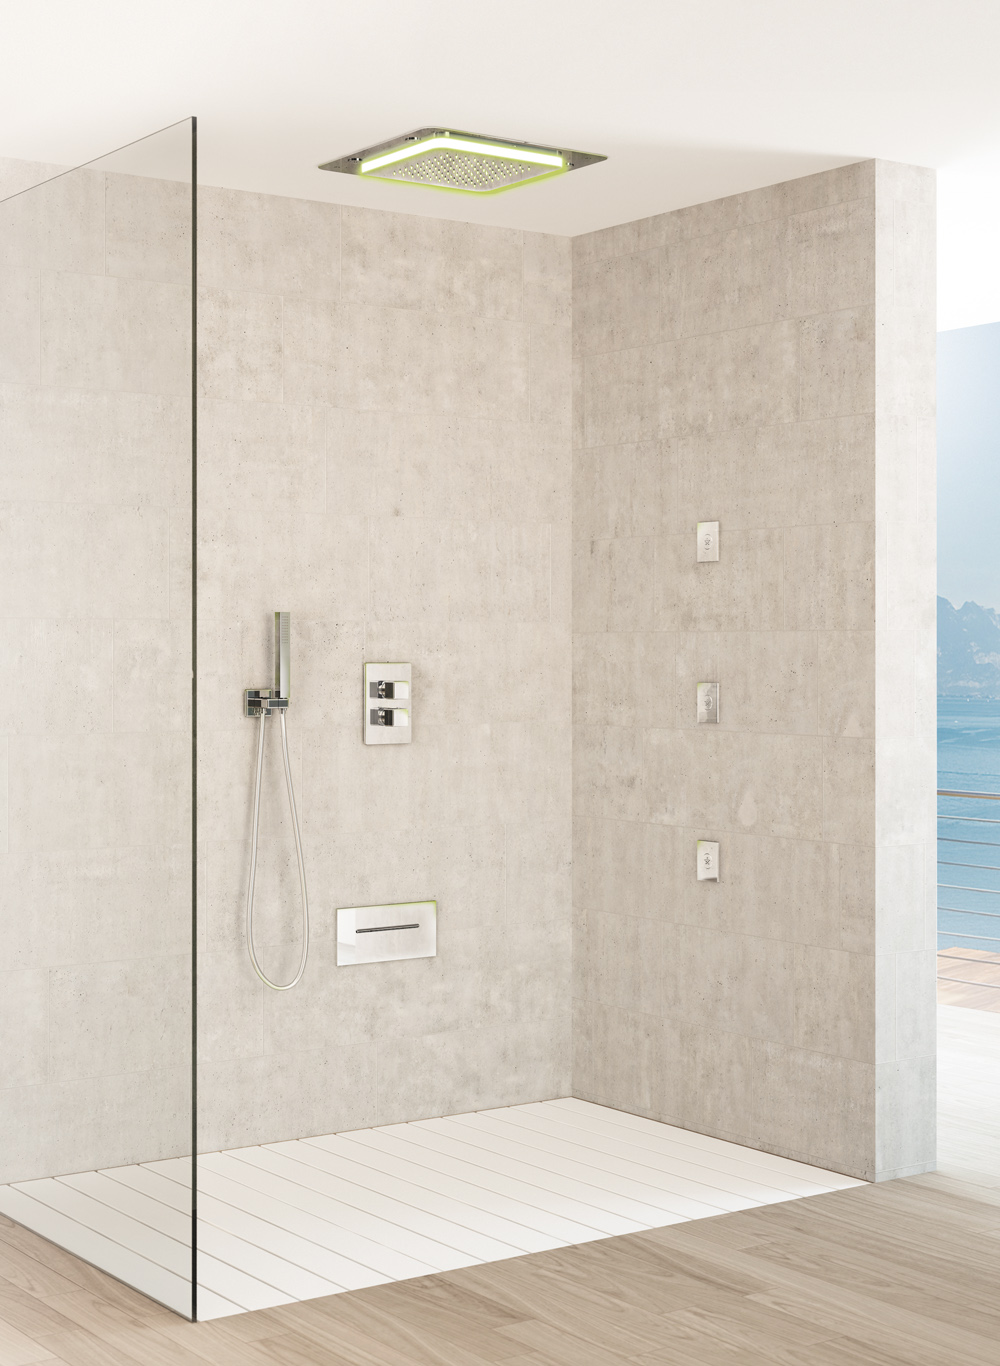 Multifunction showerhead shower Playone recessed ceiling, heads lateral body jet shower